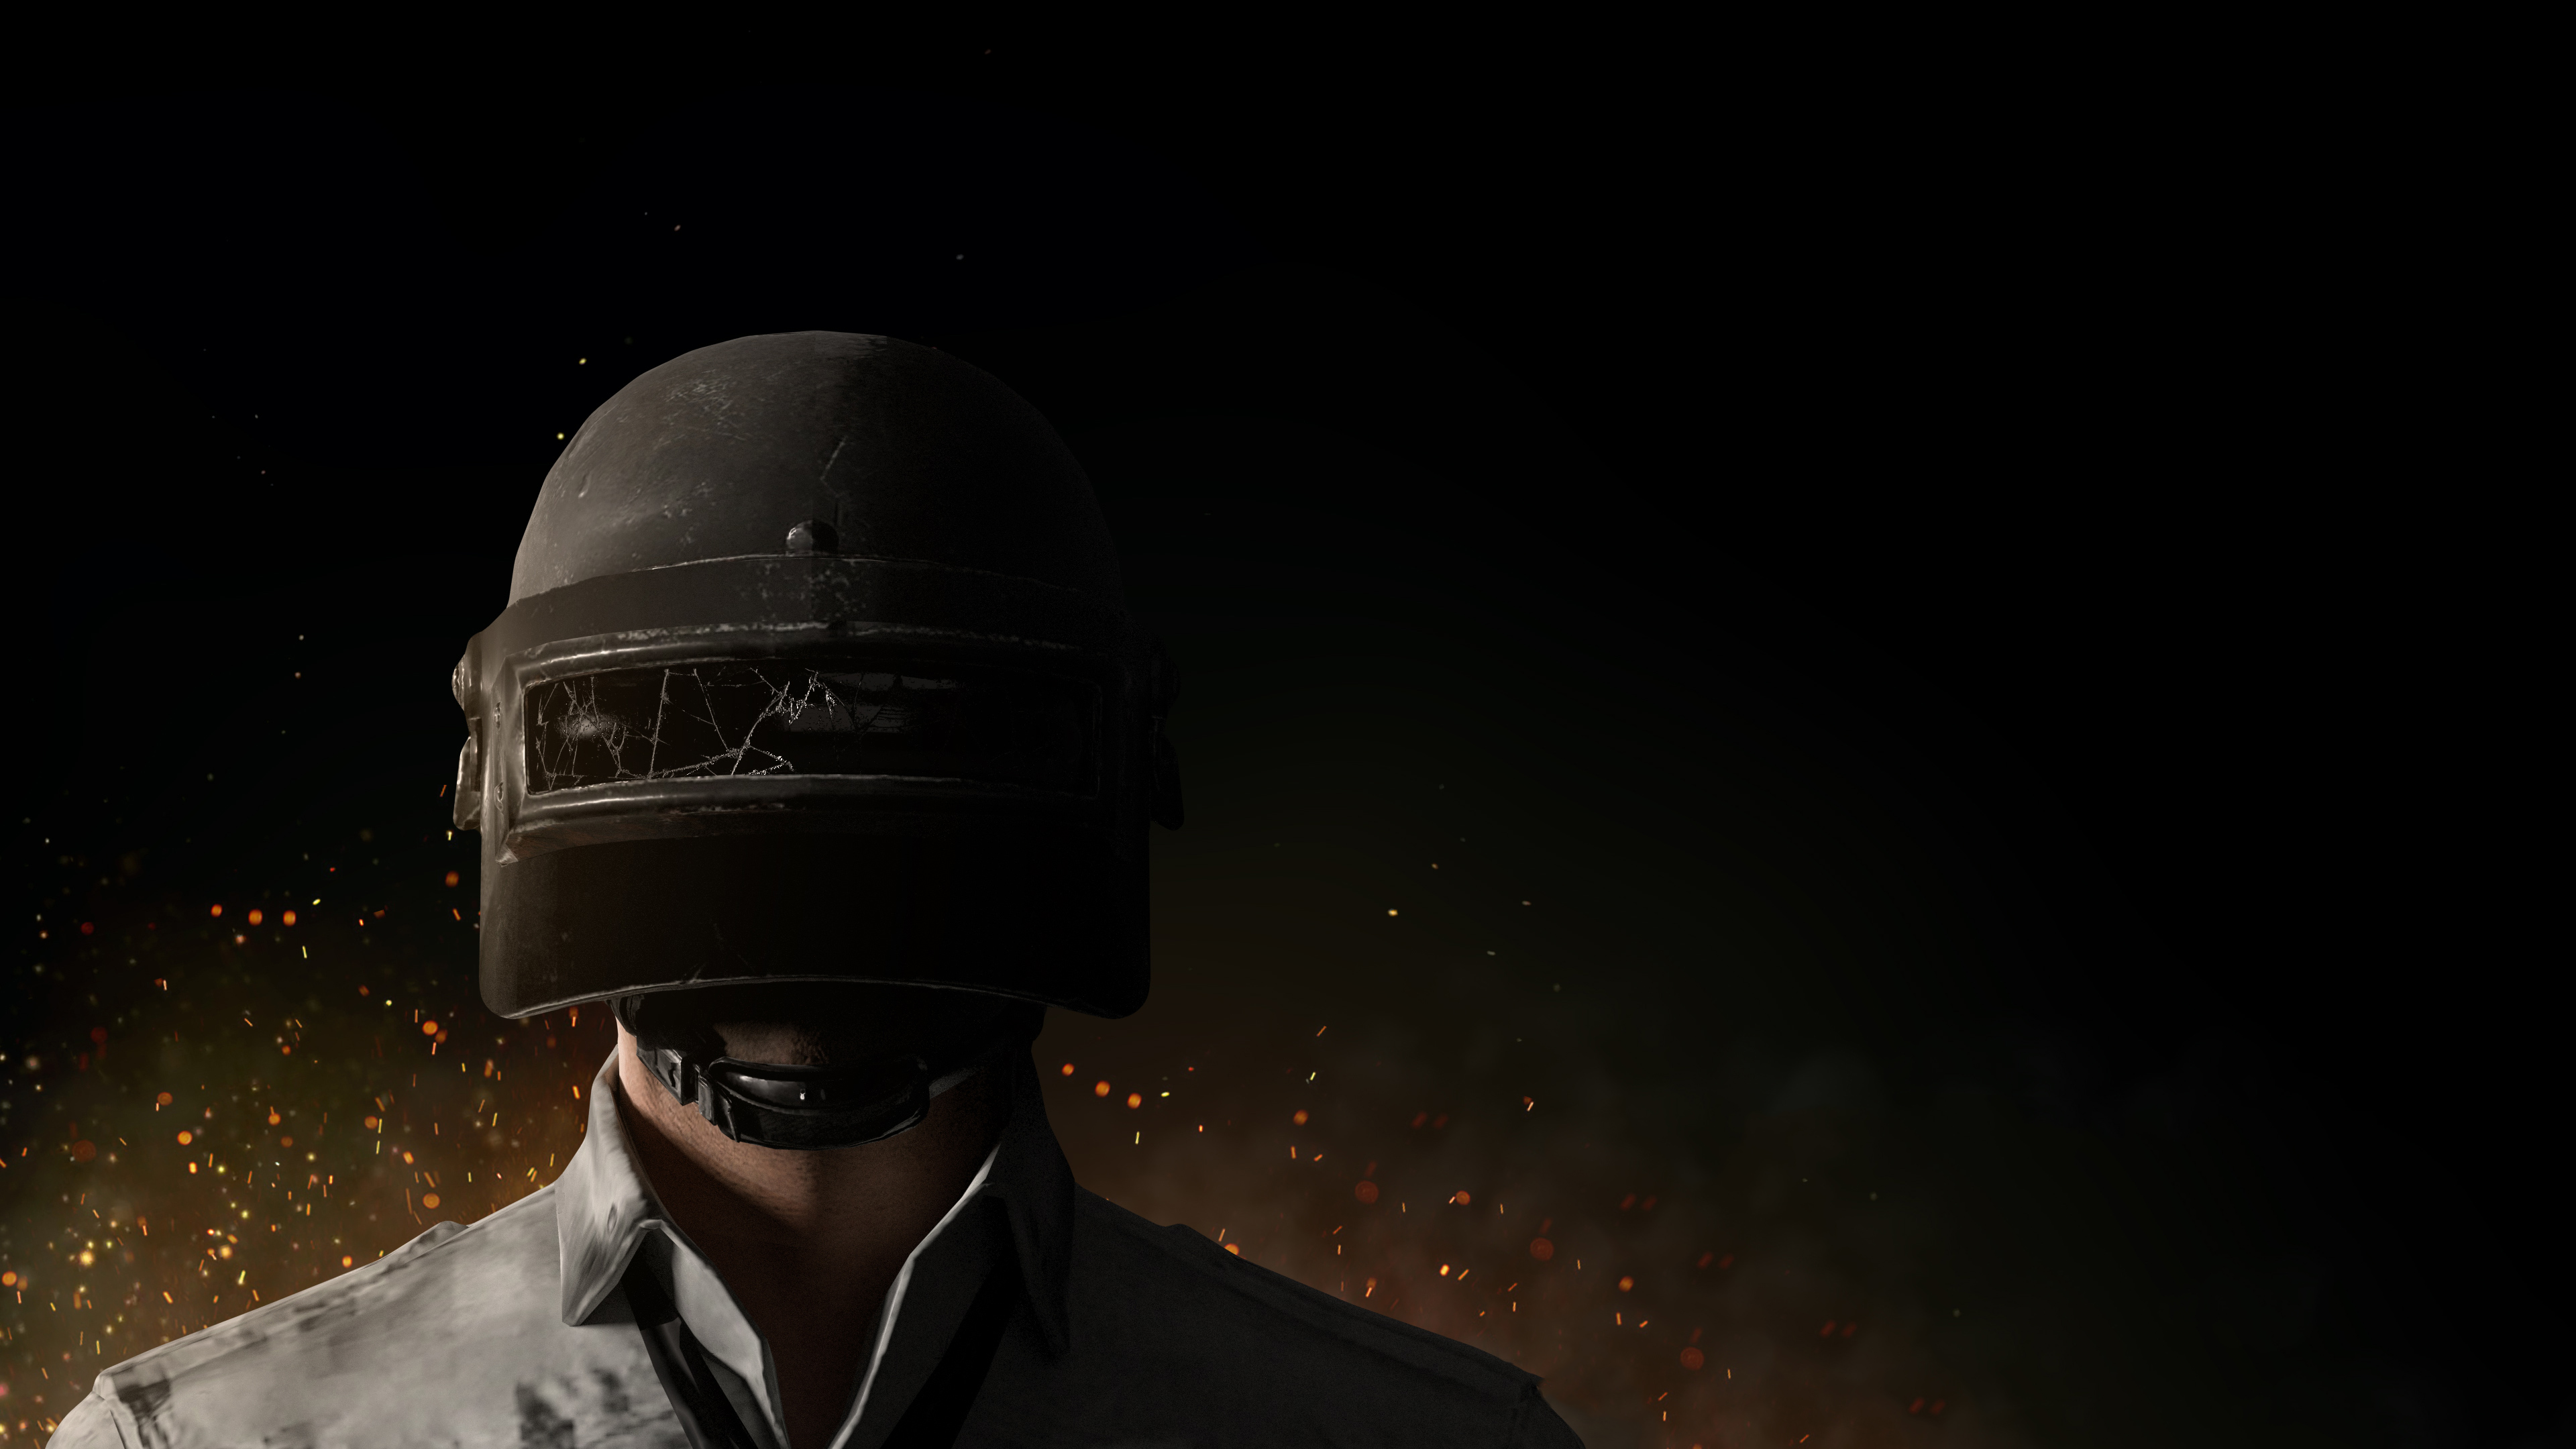 Pubg Game 4k Wallpaper Download: PUBG Helmet Guy 4k, HD Games, 4k Wallpapers, Images